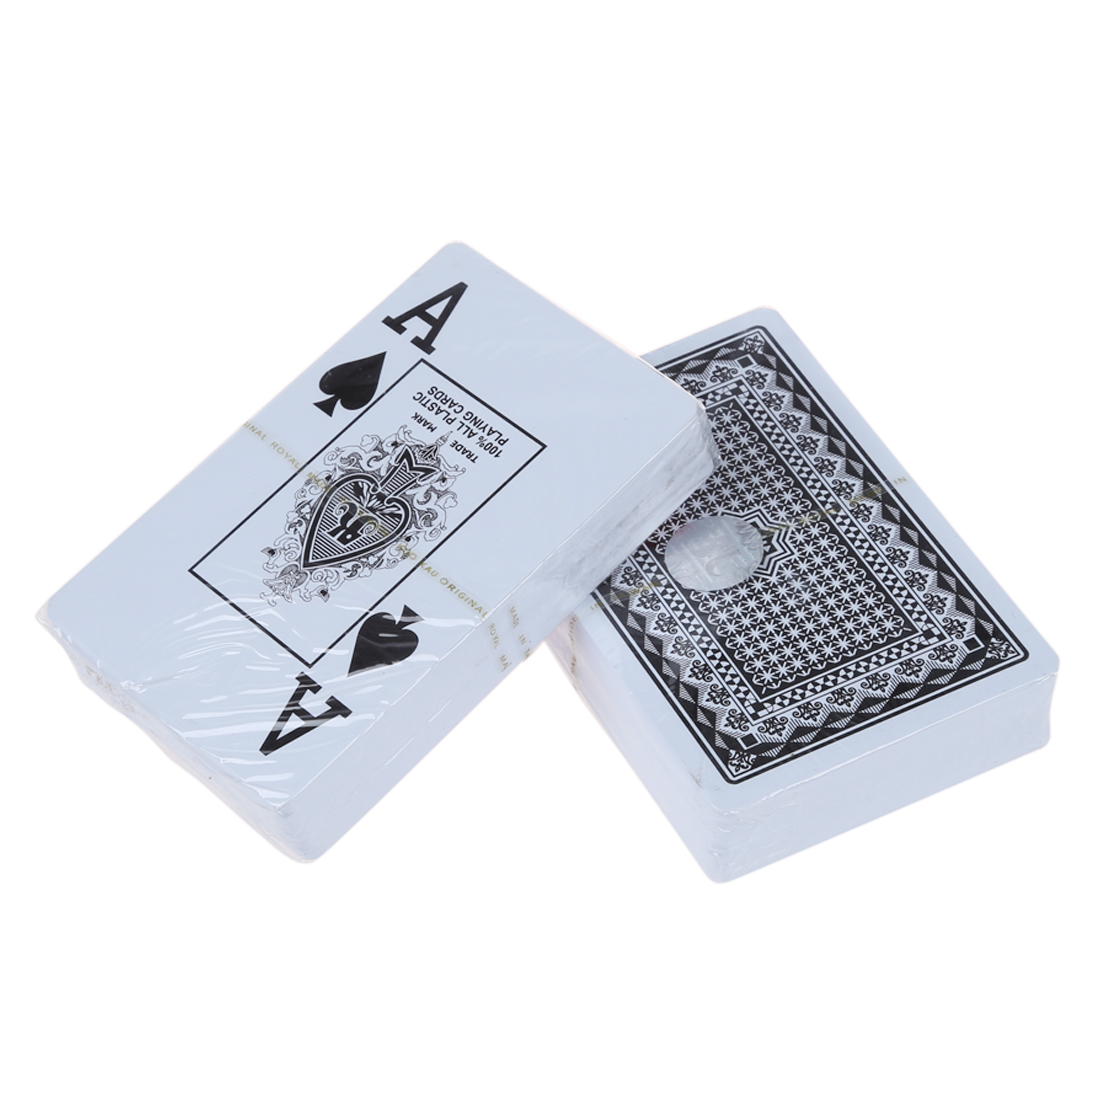 2 DECK 100% PLASTIC POKER SIZE PLAYING CARDS